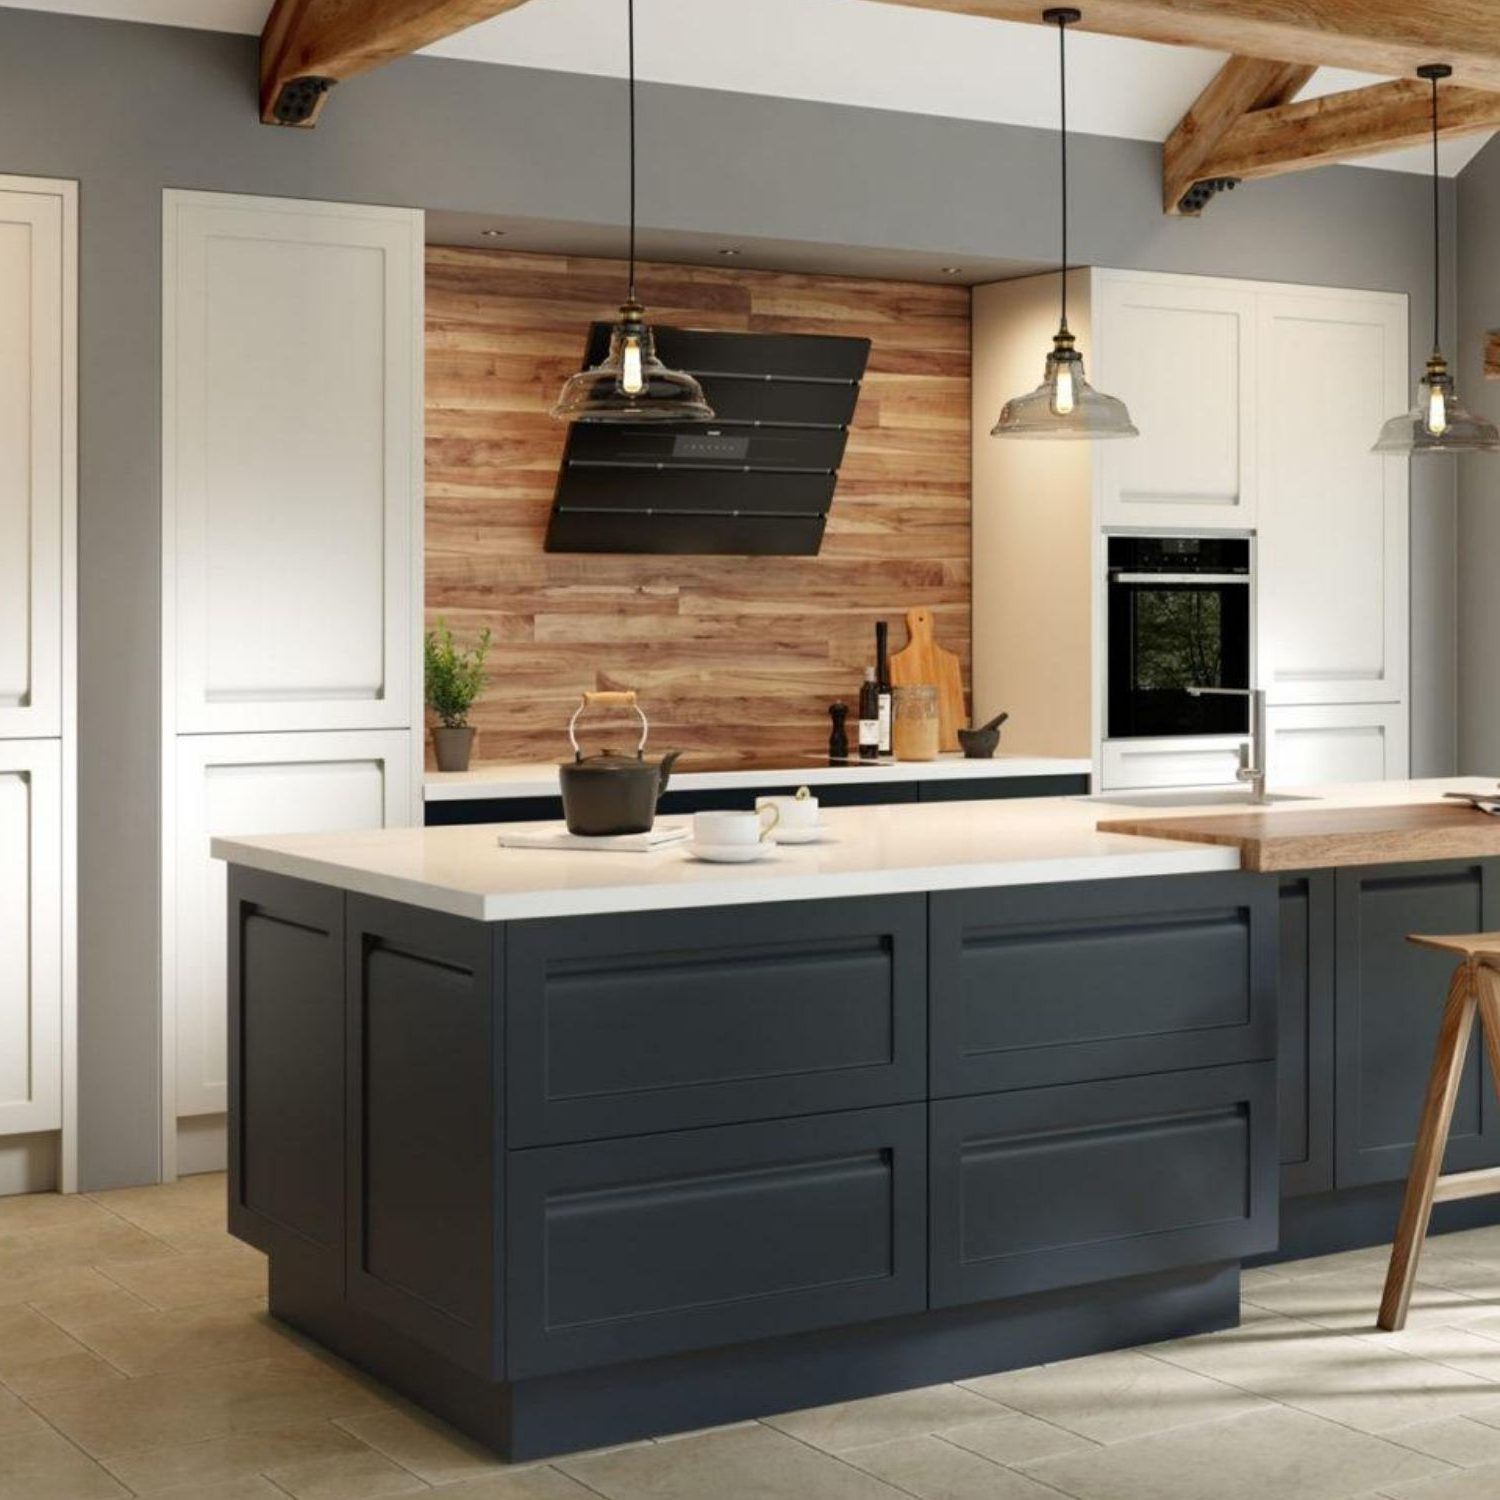 contemporary kitchen surrey